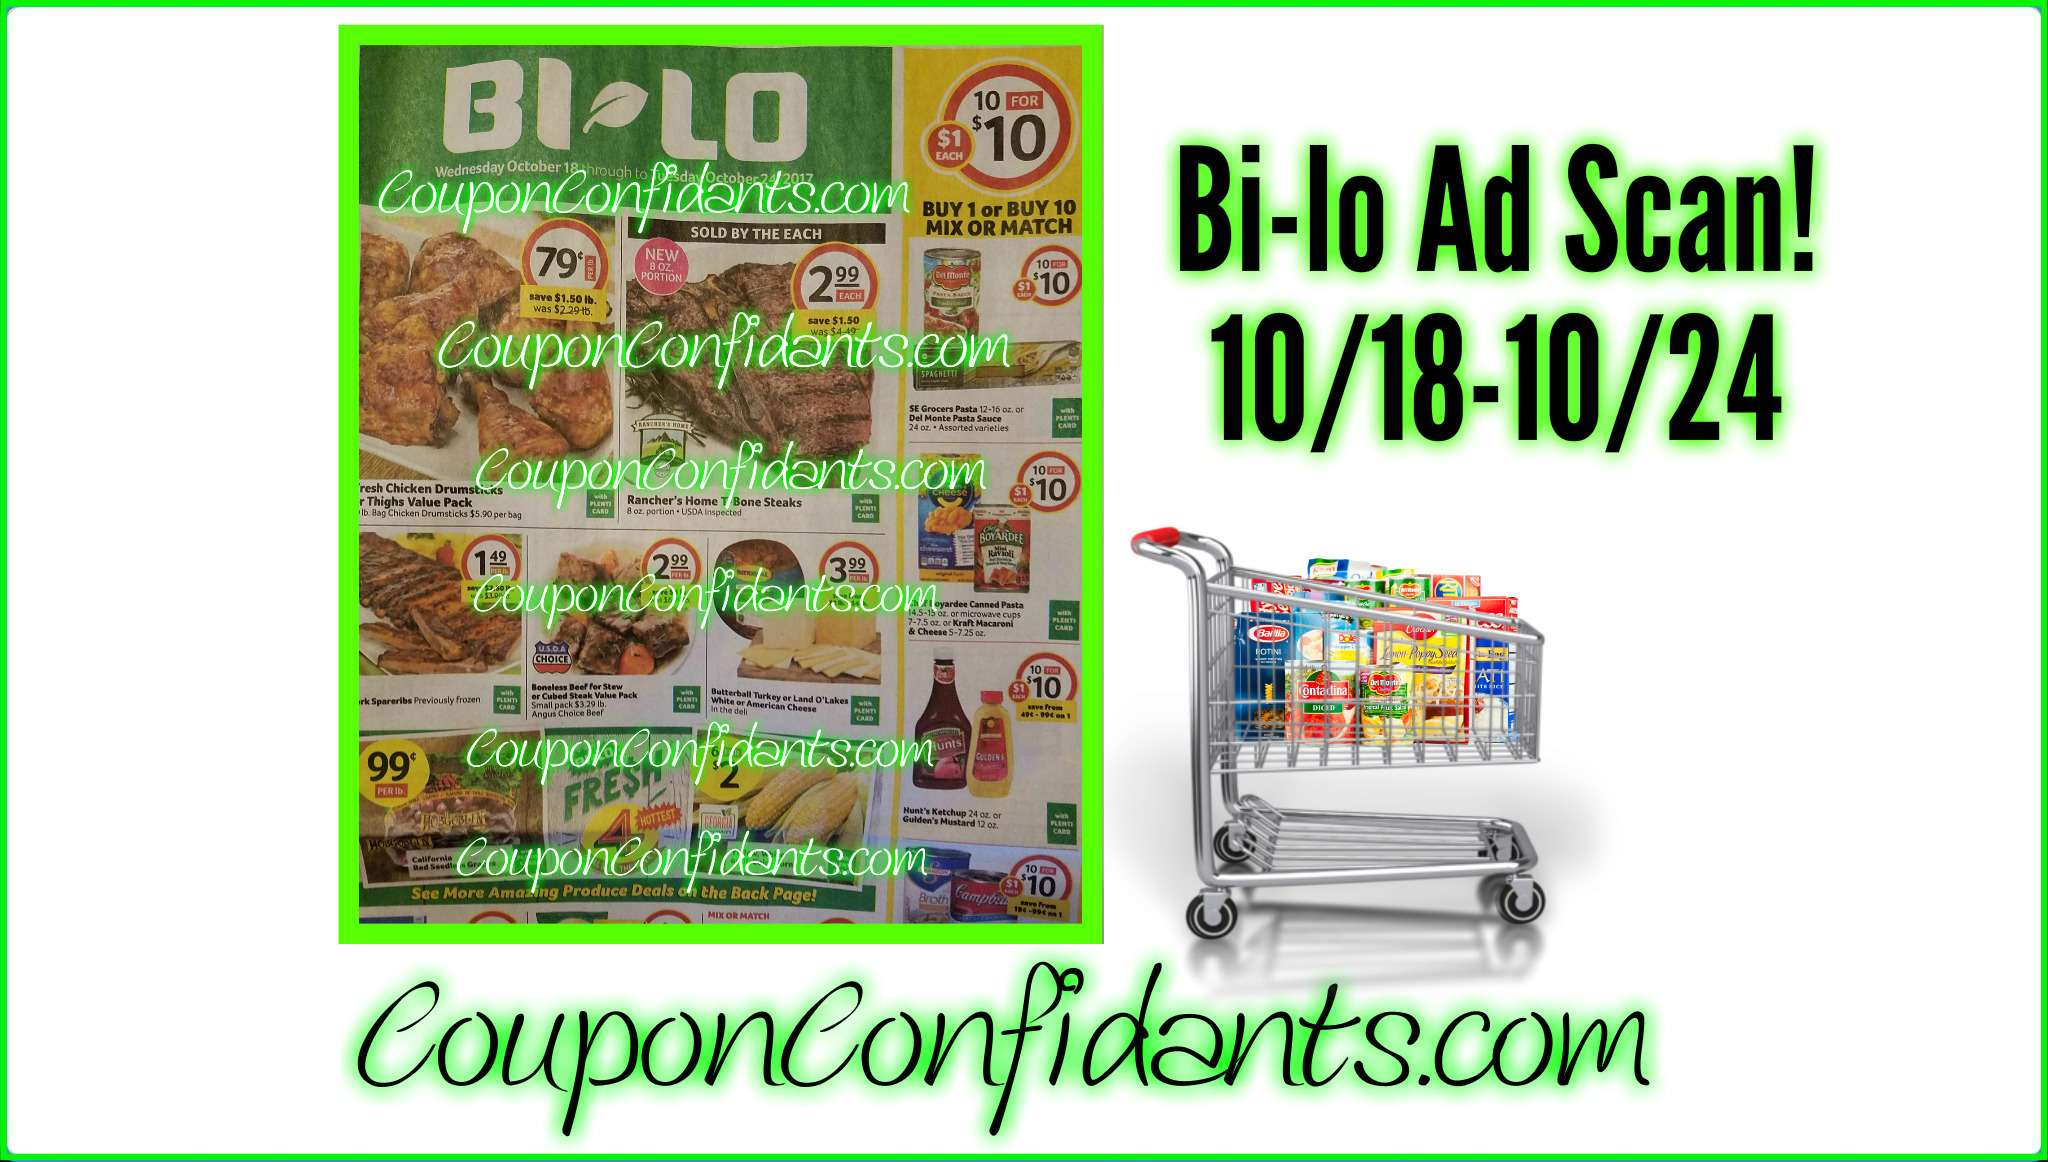 Bi-lo Ad Scan and Match ups!!